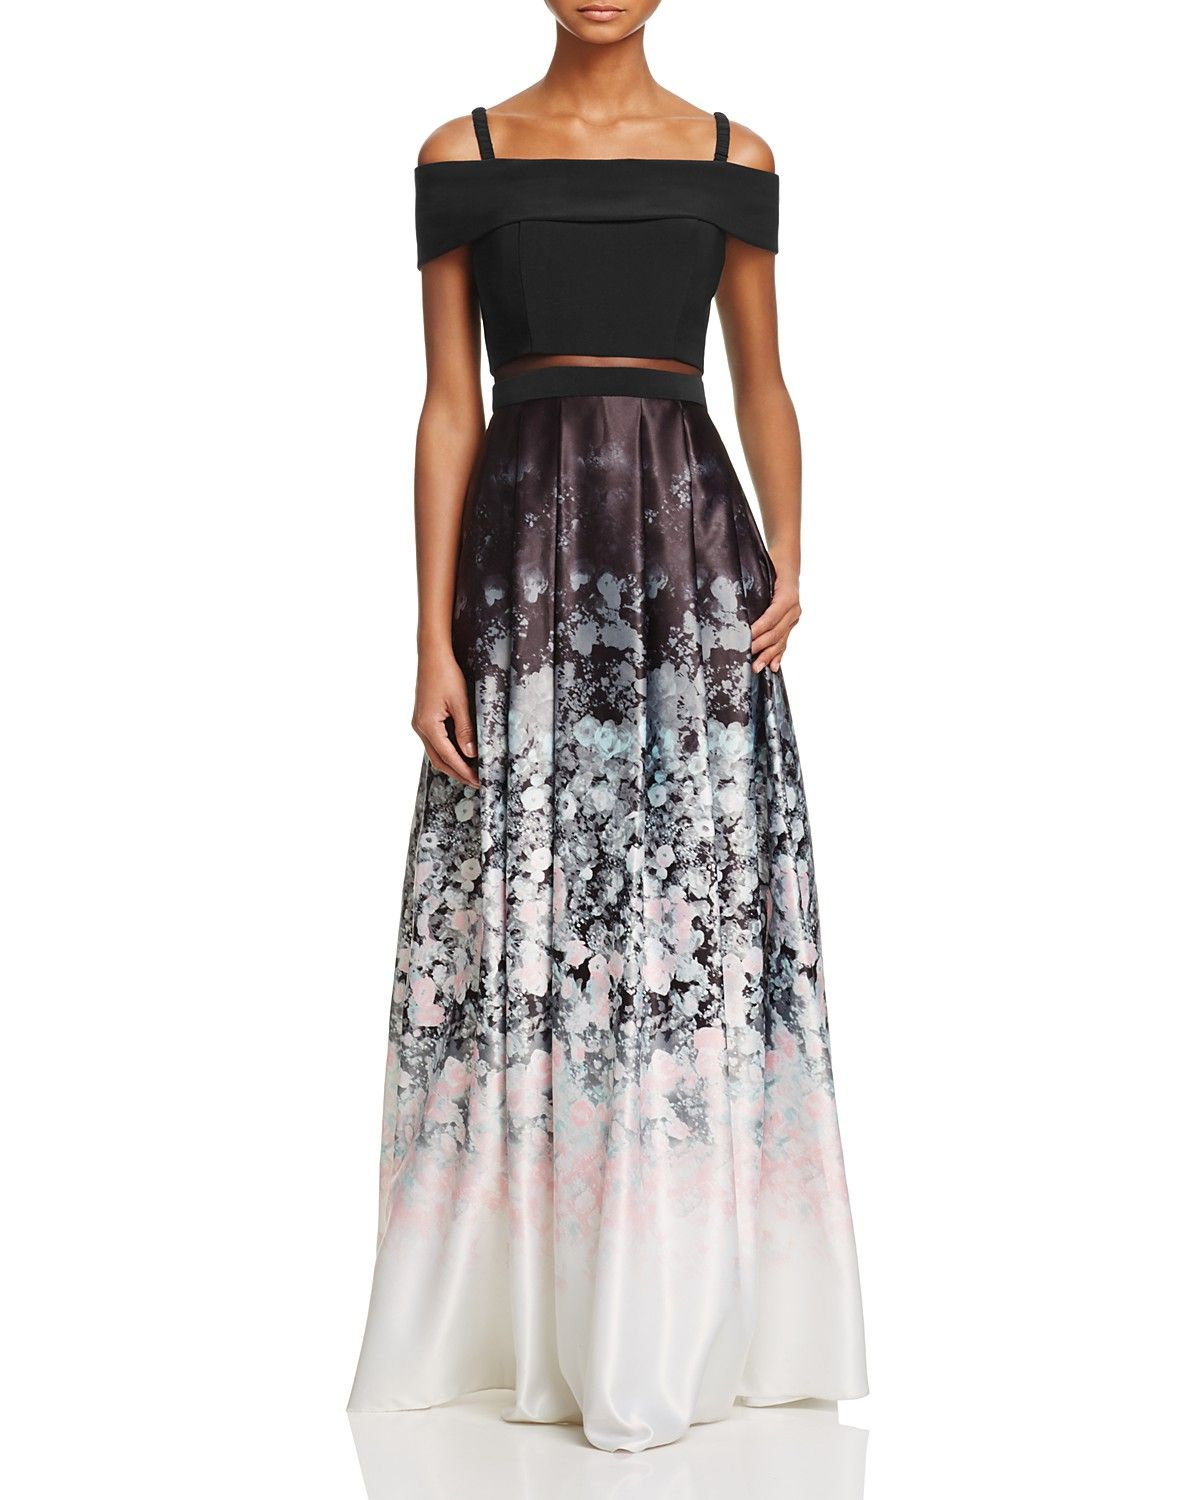 Aqua Floral Ombre Gown 100 Exclusive Women Bloomingdale S Ombre Gown Floral Print Gowns Ball Dresses [ 1500 x 1200 Pixel ]